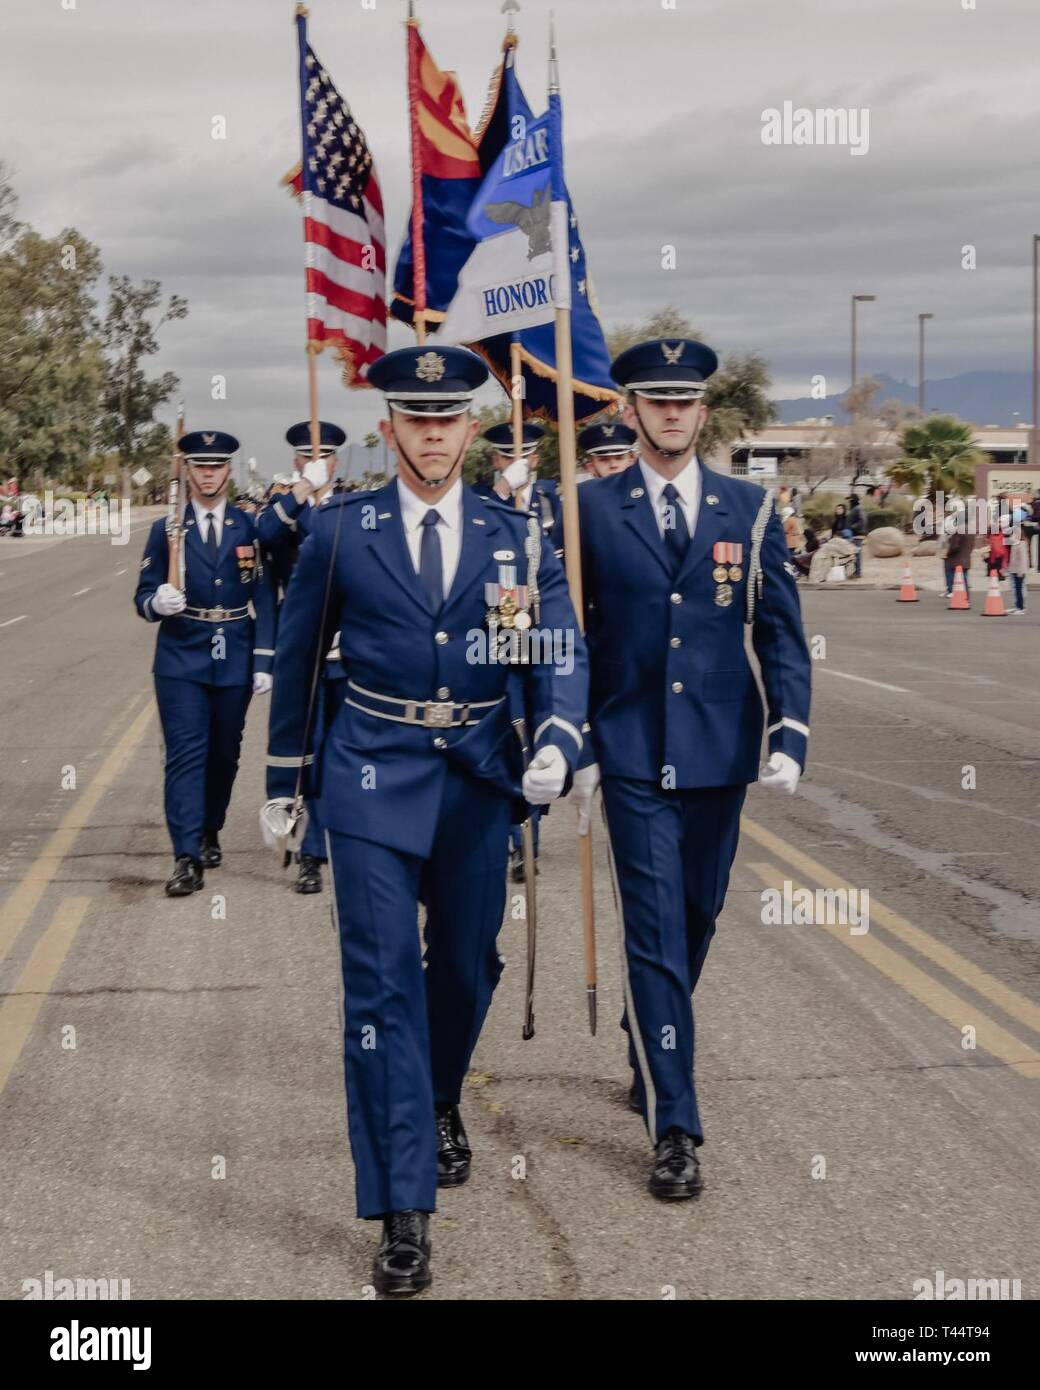 Tucson Christmas Parade 2019 The U.S. Air Force Color Guard participate in the annual rodeo